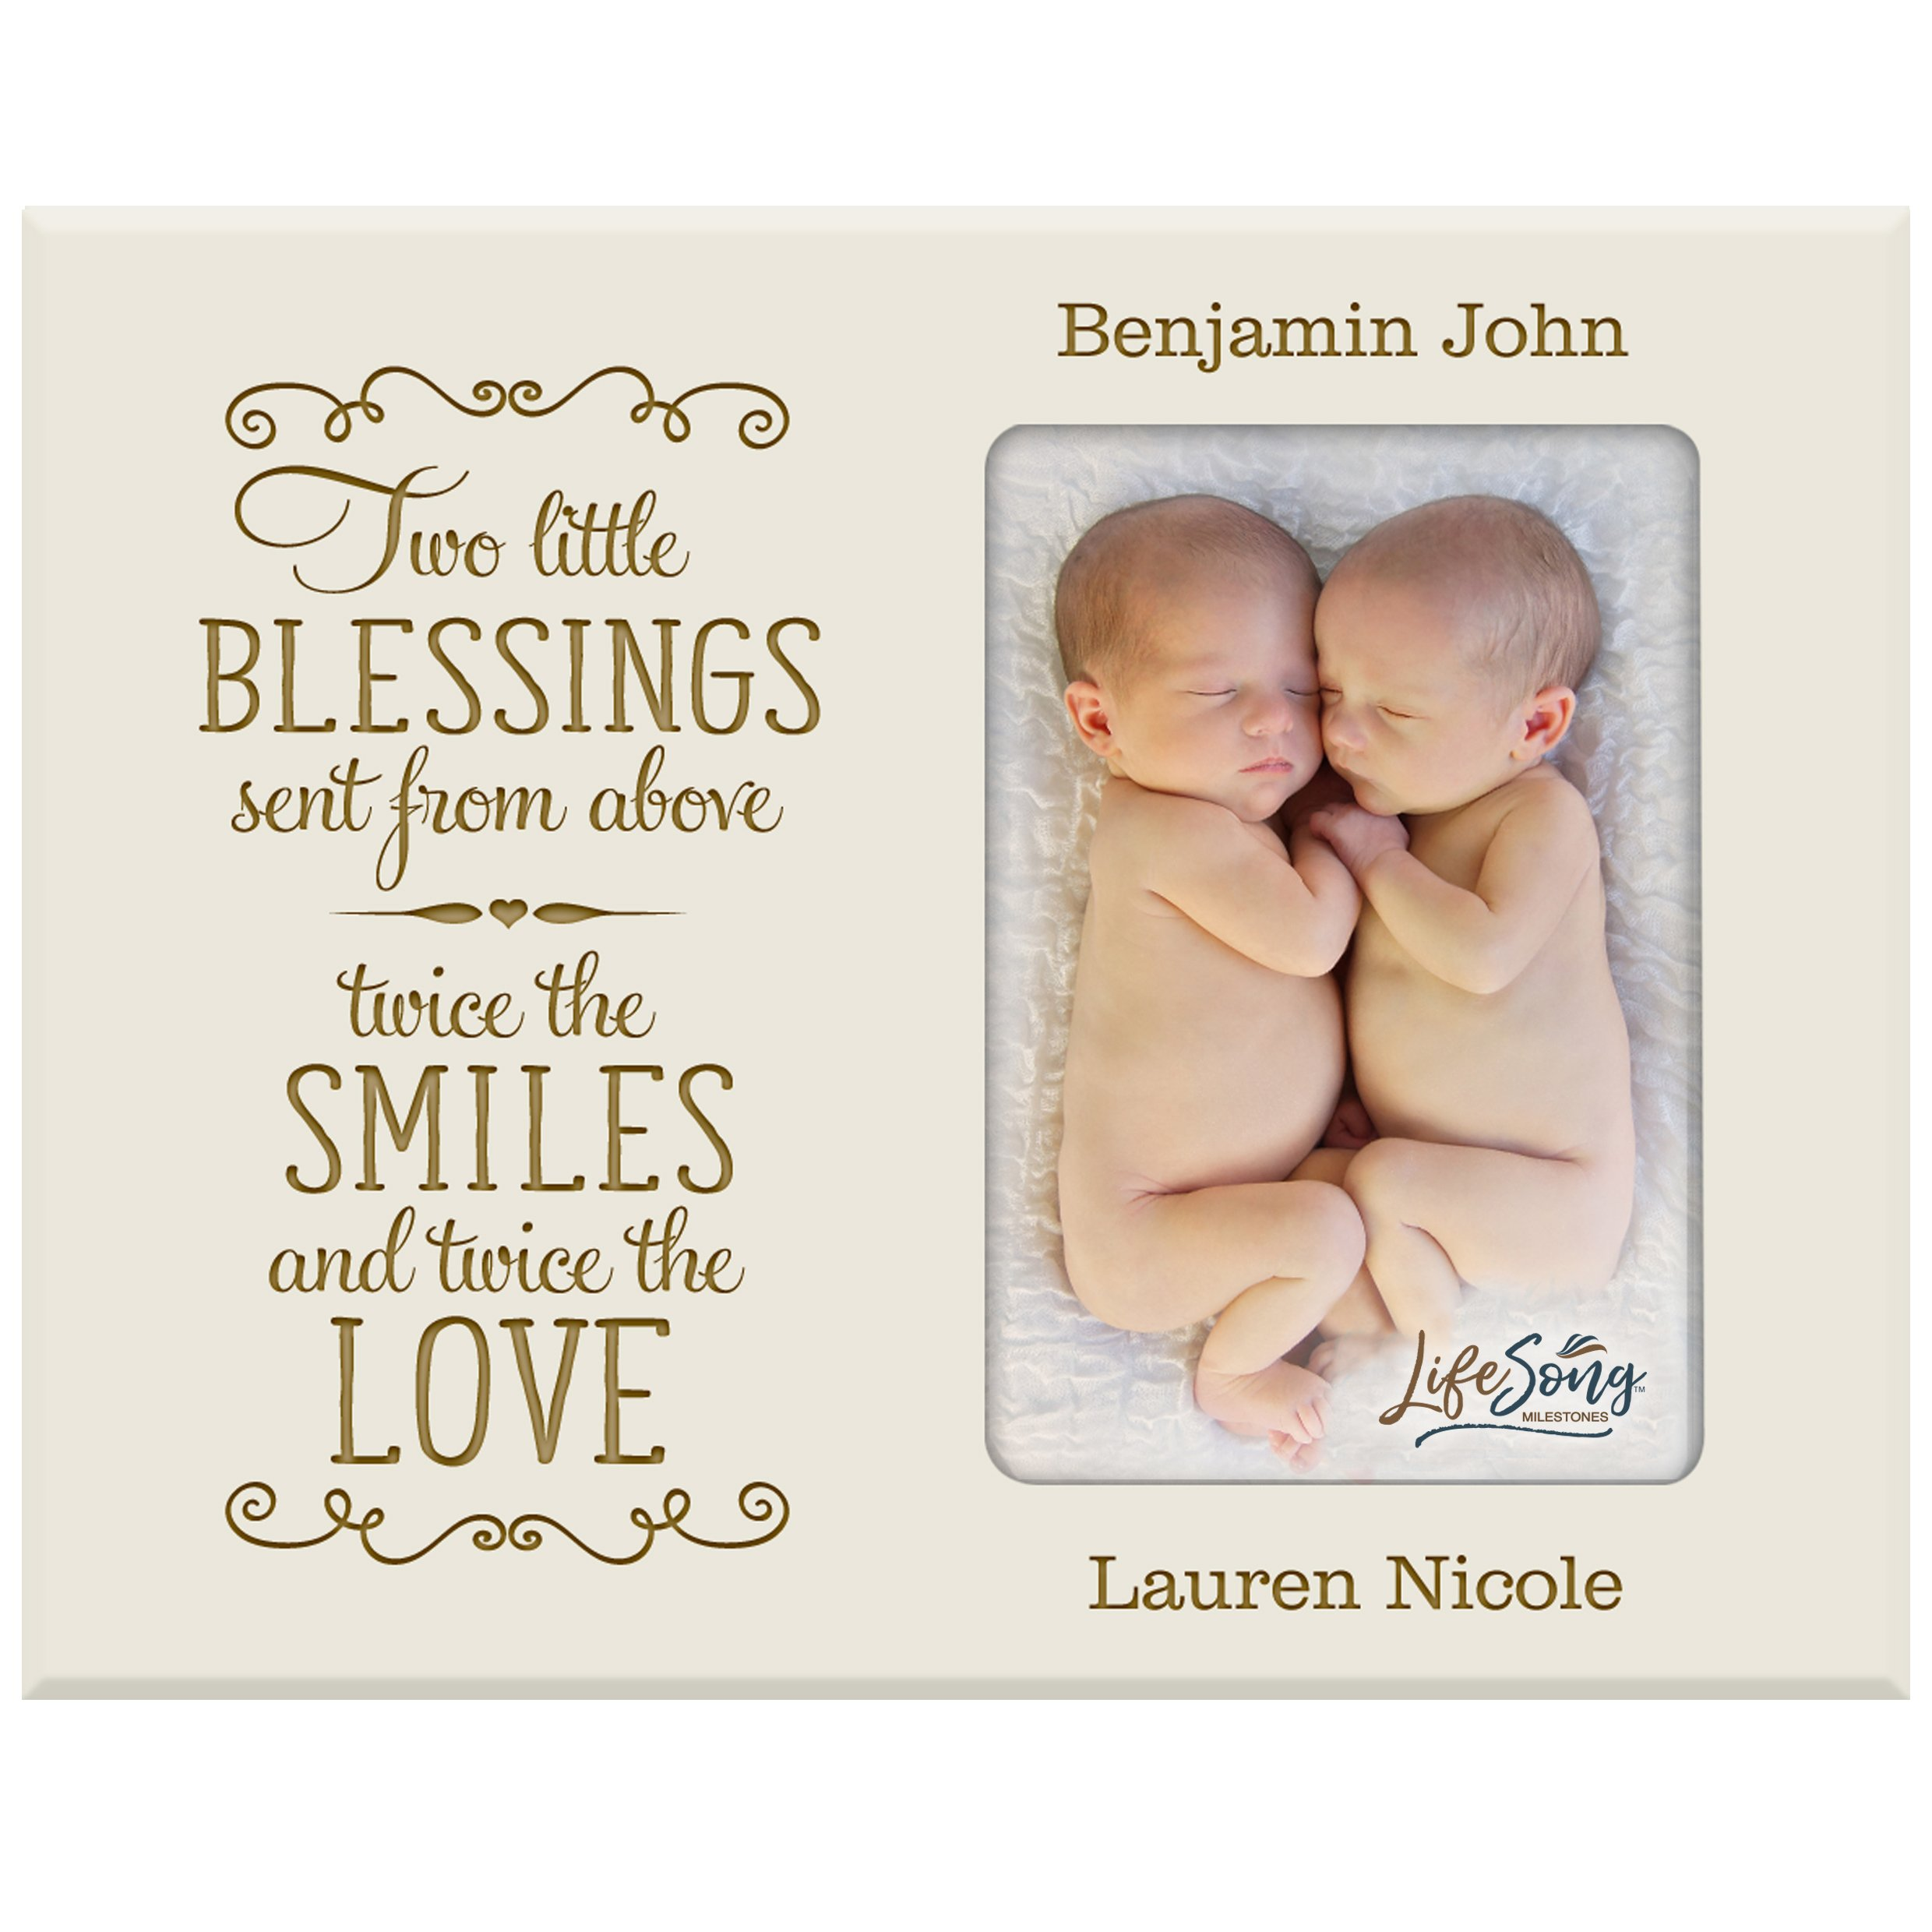 LifeSong Milestones Personalized New Baby Gifts for Twins Picture Frame for Boys and Girls Custom Engraved Photo Frame for New Parents Nana,Mimi and Grandparents (Ivory)